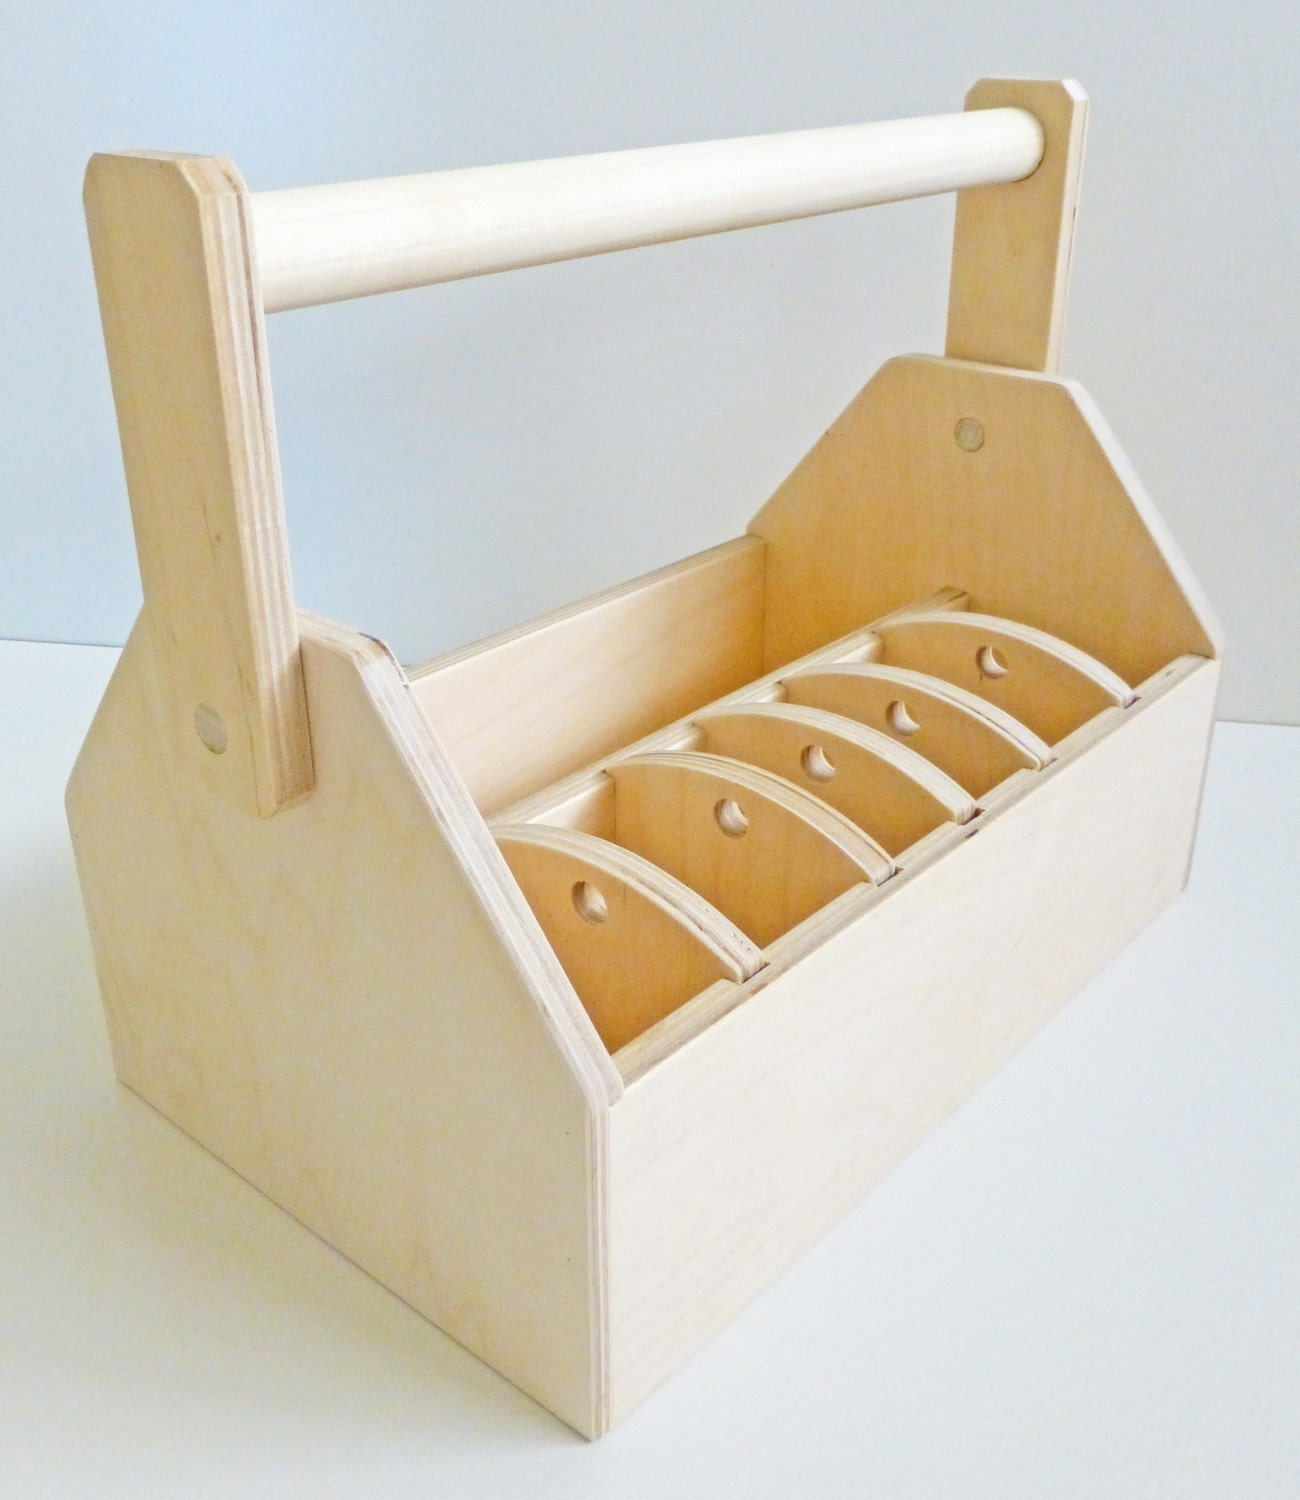 ... mere garden tool box caddy as shown here childs wooden tool box caddy